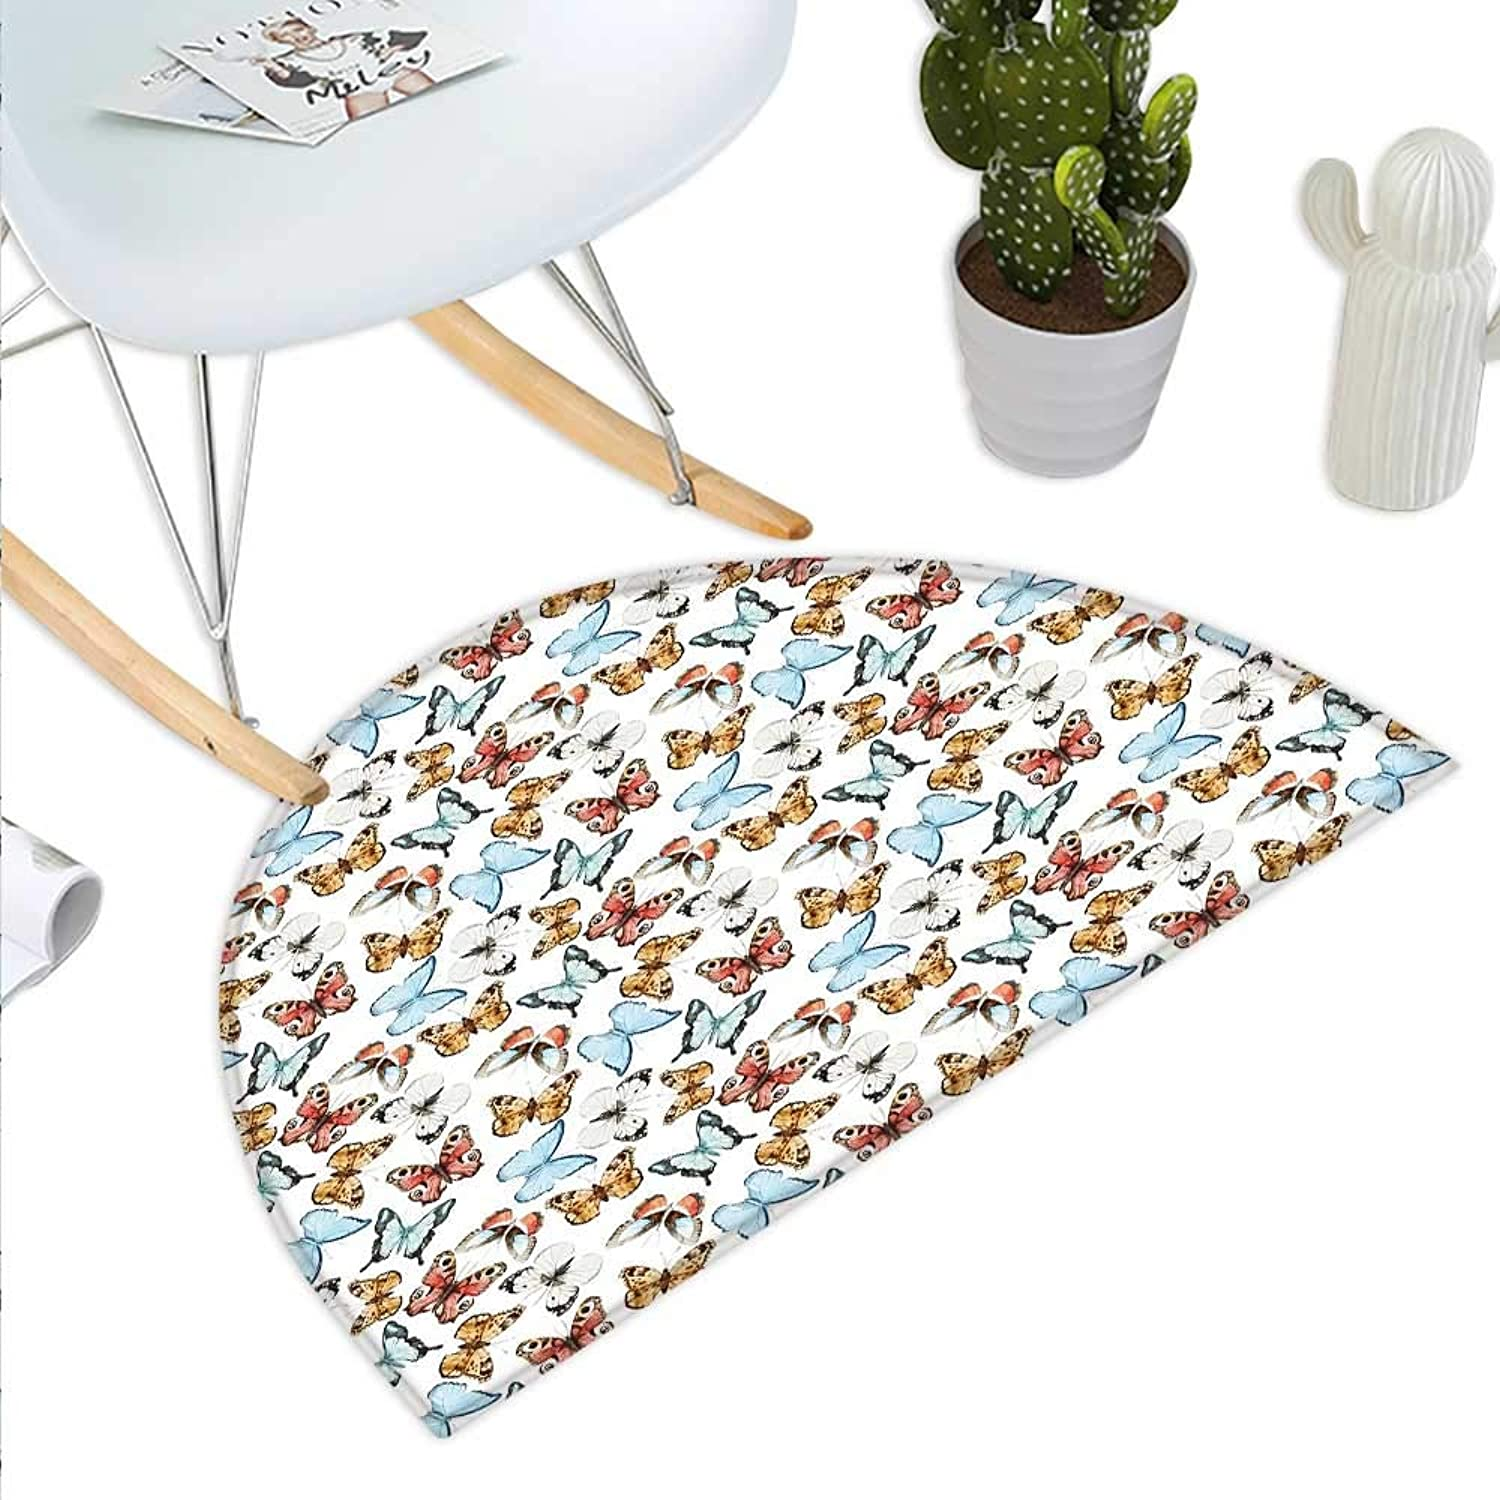 Butterfly Semicircle Doormat Types of Spring Season Animals Soft Fauna Pattern Abstract Nature Halfmoon doormats H 43.3  xD 64.9  Vermilion Pale bluee Brown